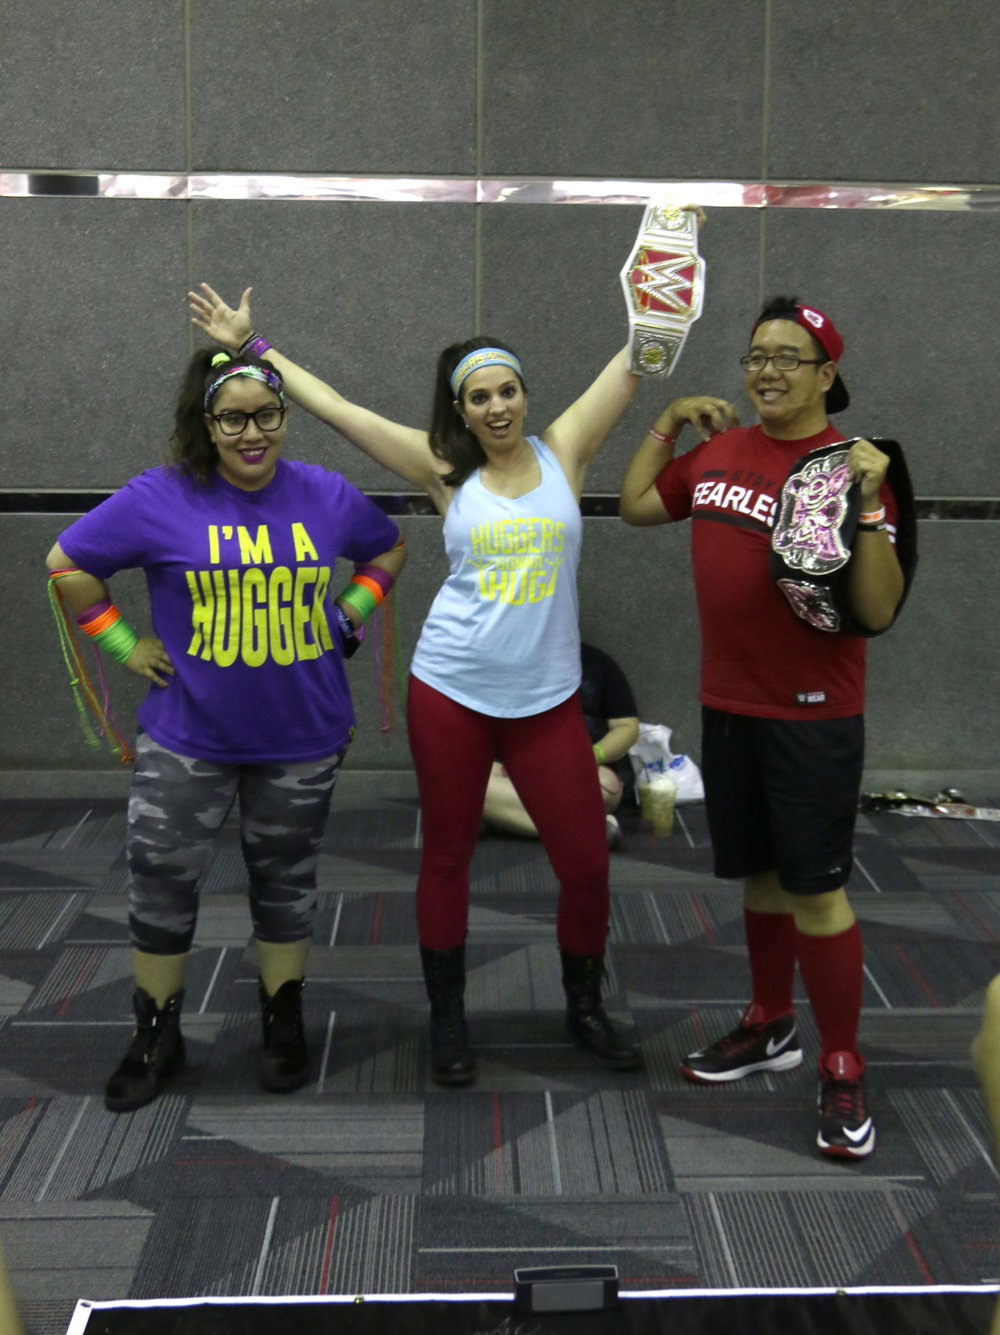 Two Bayleys and a Nikki Bella cosplayer.